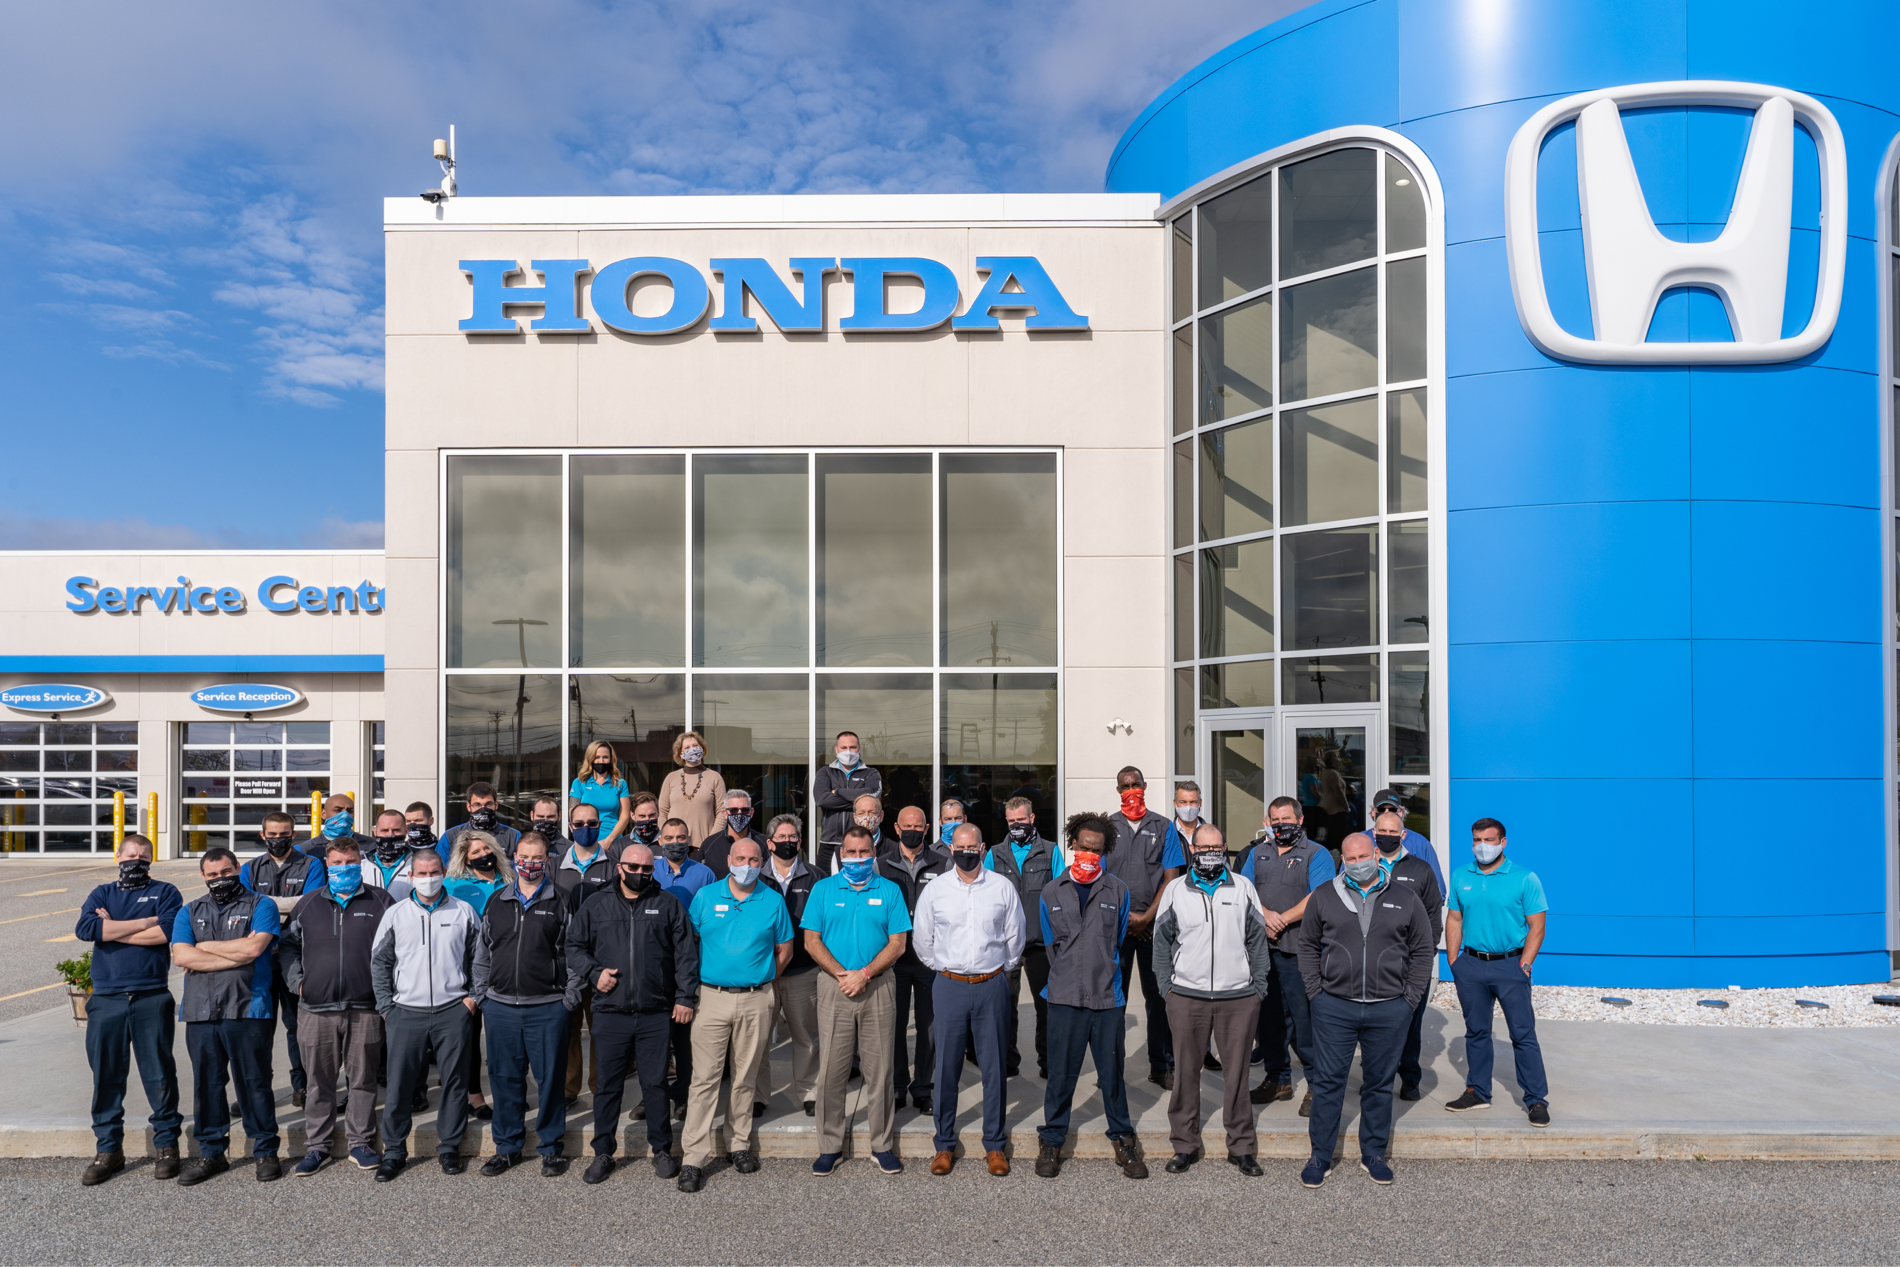 staff gathered in front of dealership